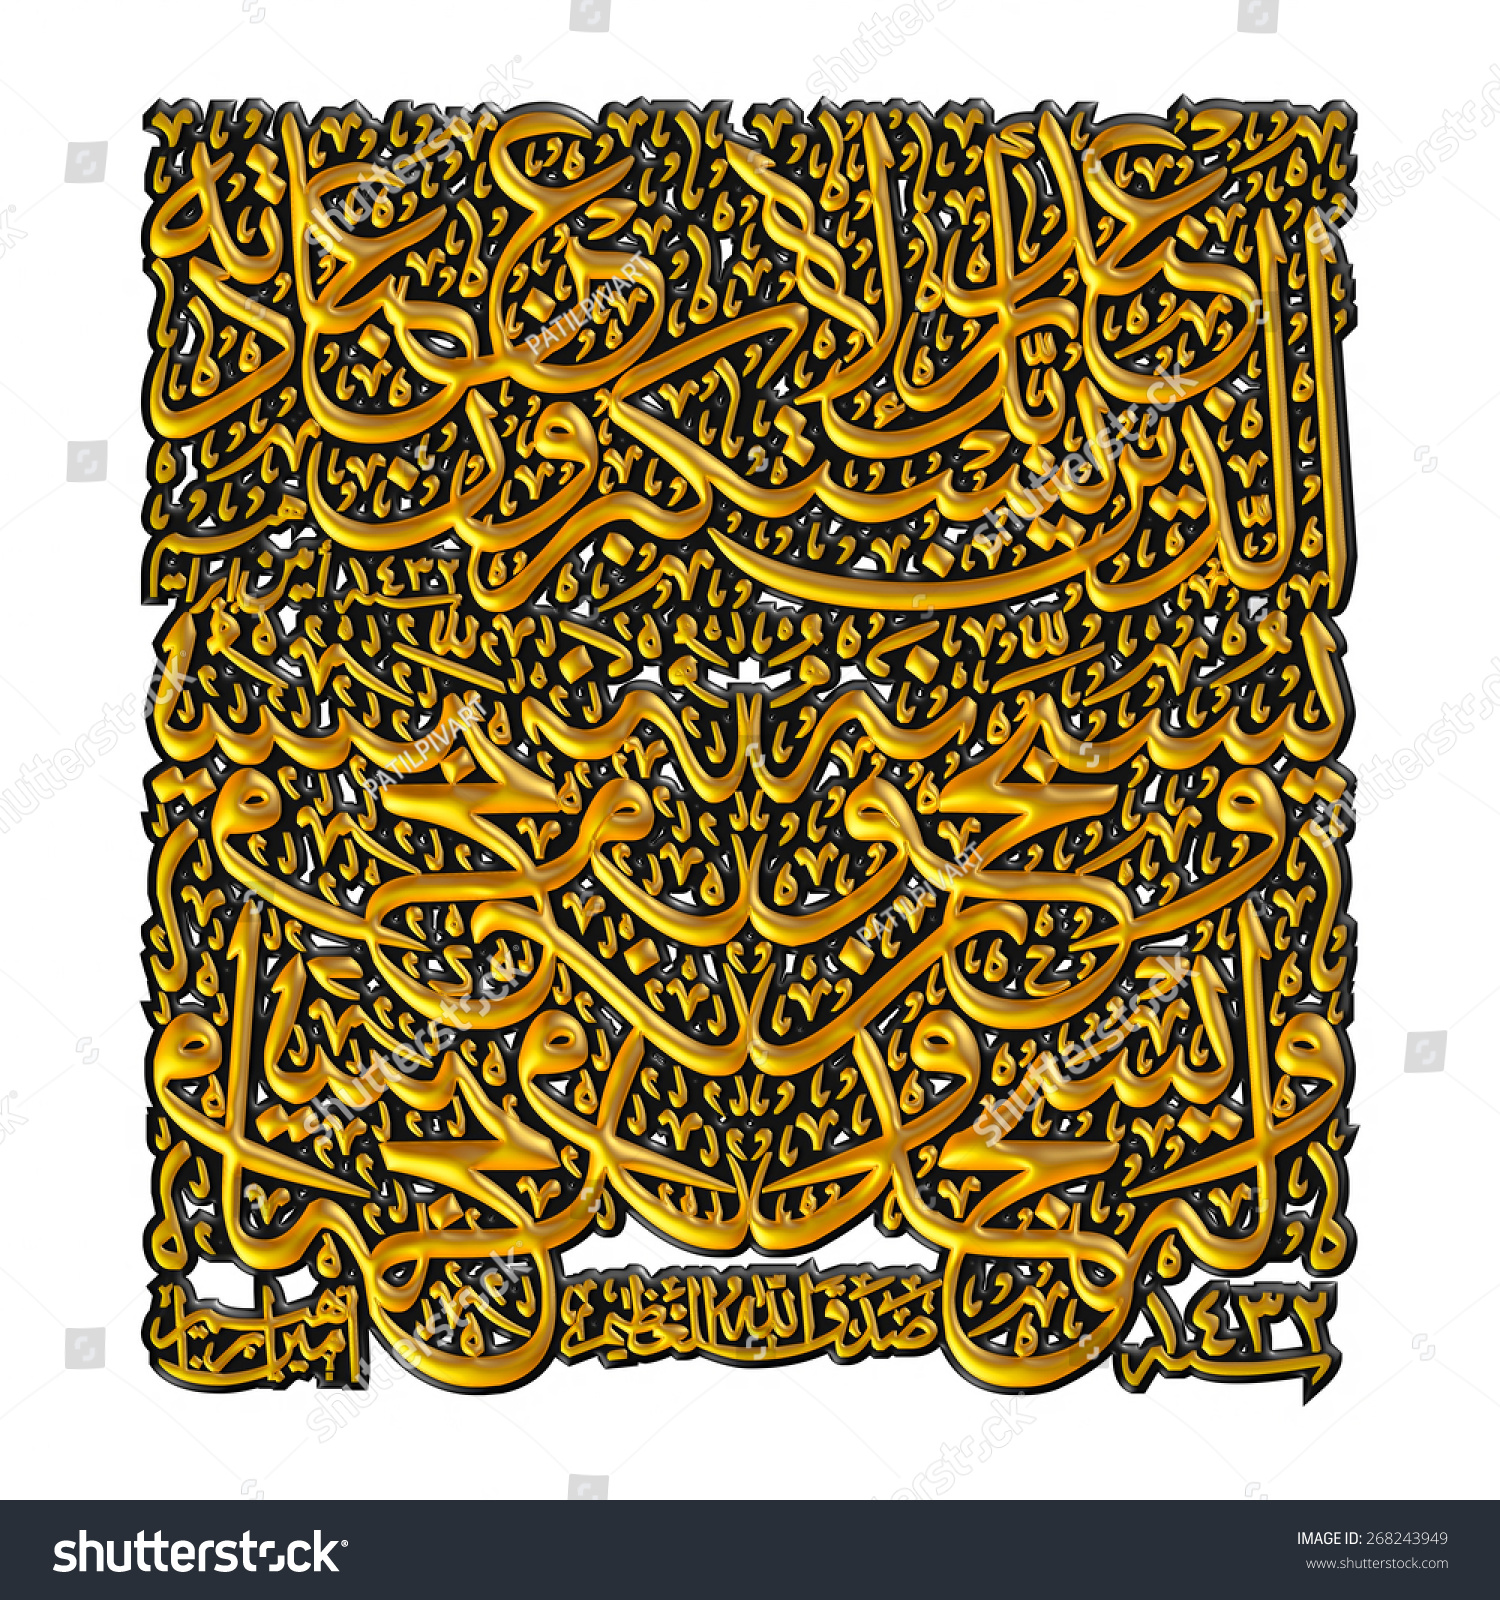 Arabic Calligraphy 3d Of Chapter In Koran Stock Photo